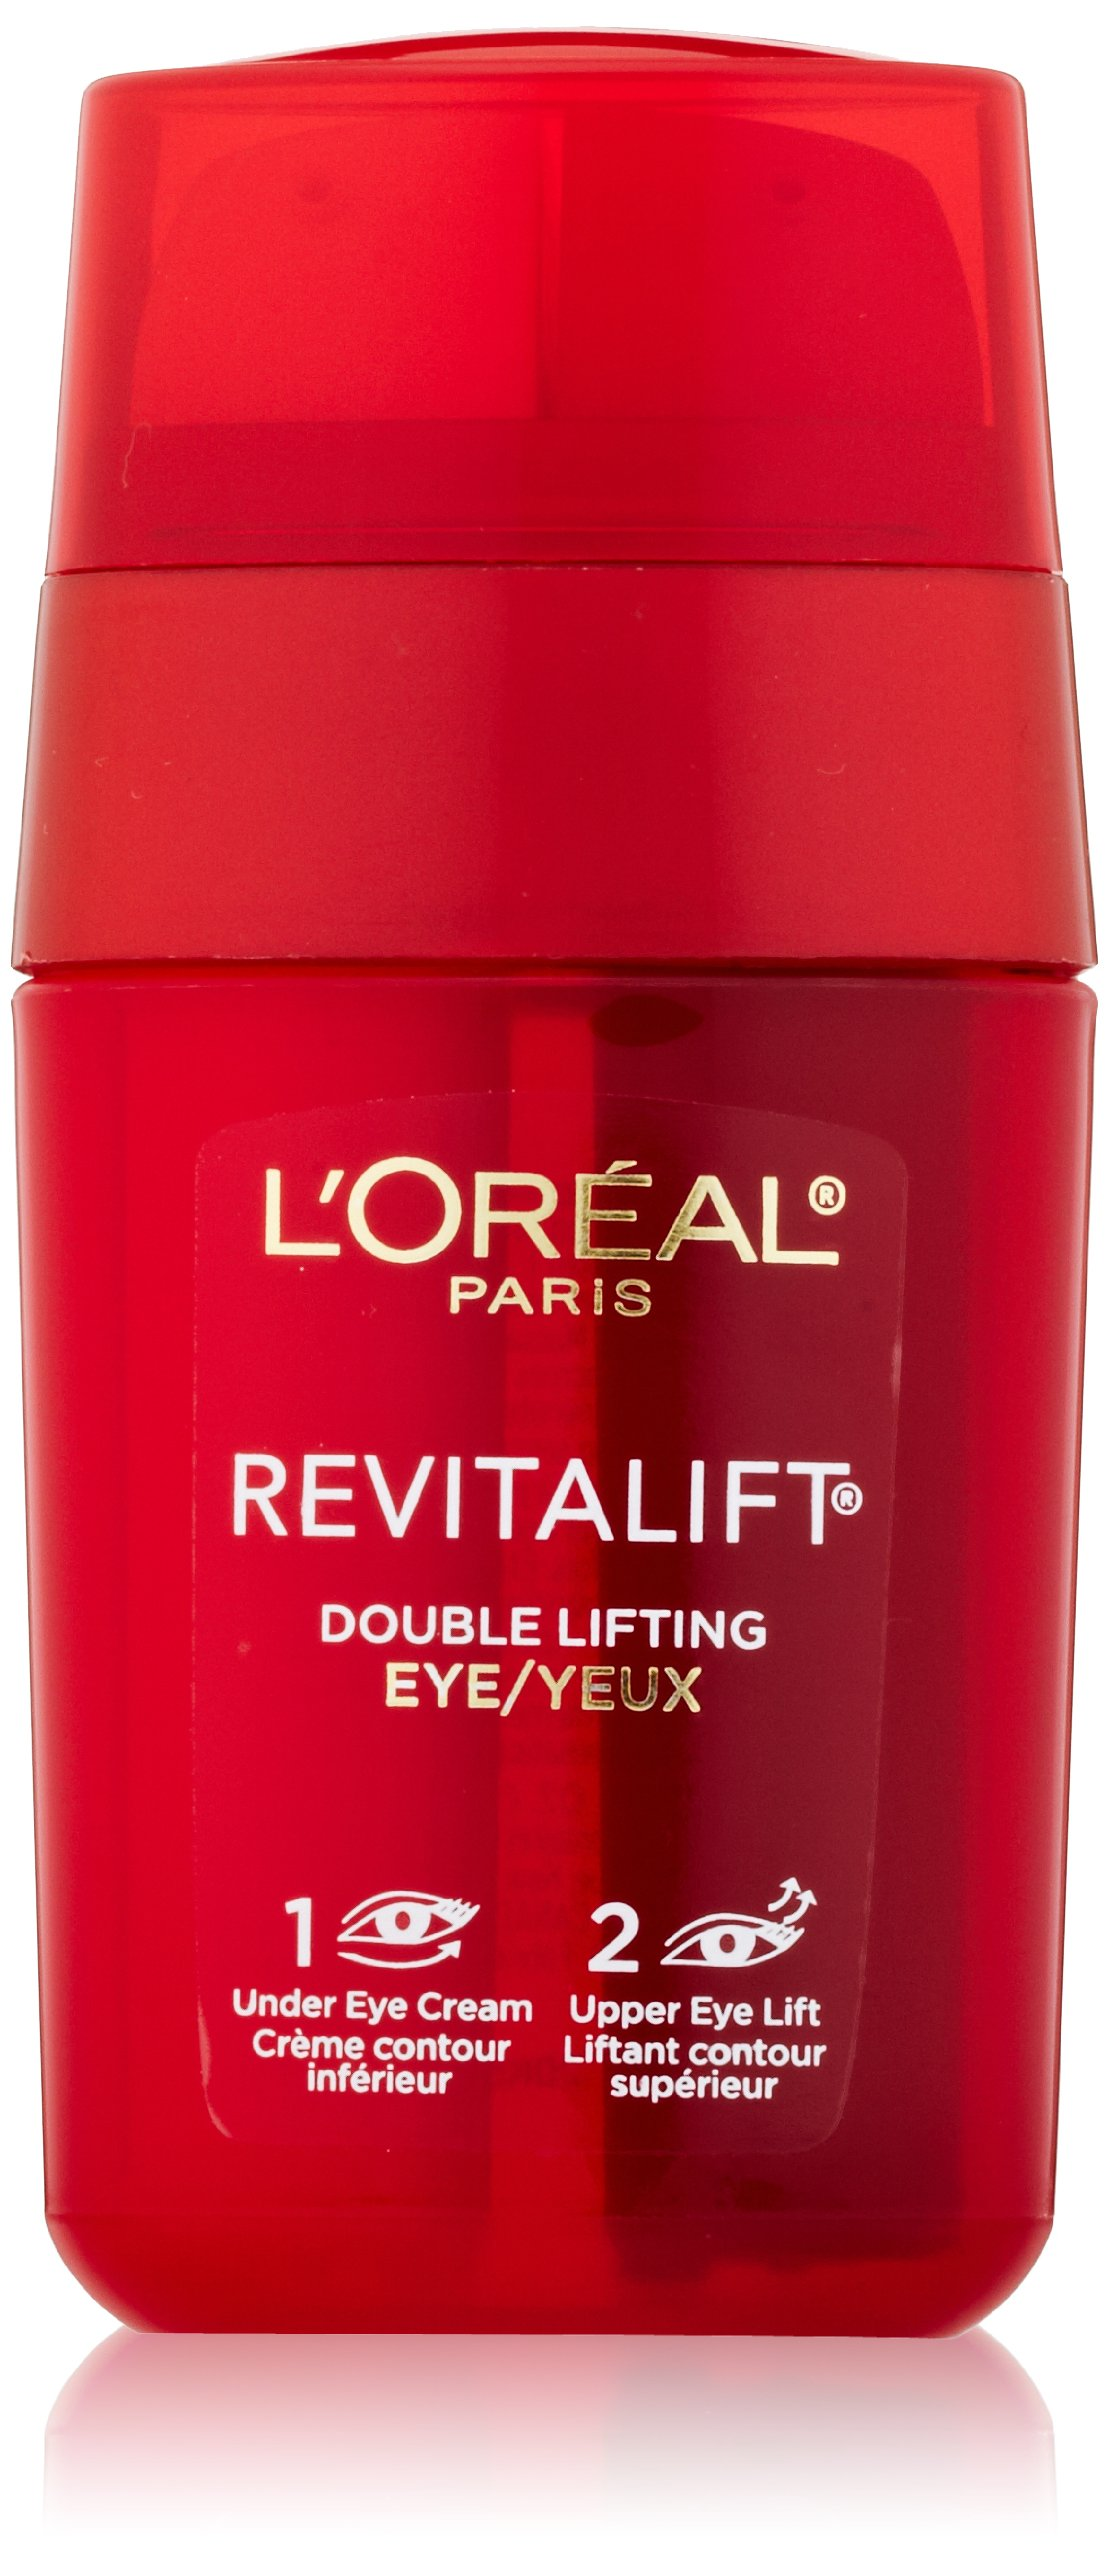 L'Oreal Paris Skincare RevitaLift Double Lifting Eye Cream Treatment with Pro-Retinol A and Pro-Tensium E to Reduce Wrinkles and Diminish Appearance of Dark Circles, 0.5 fl oz by L'Oreal Paris